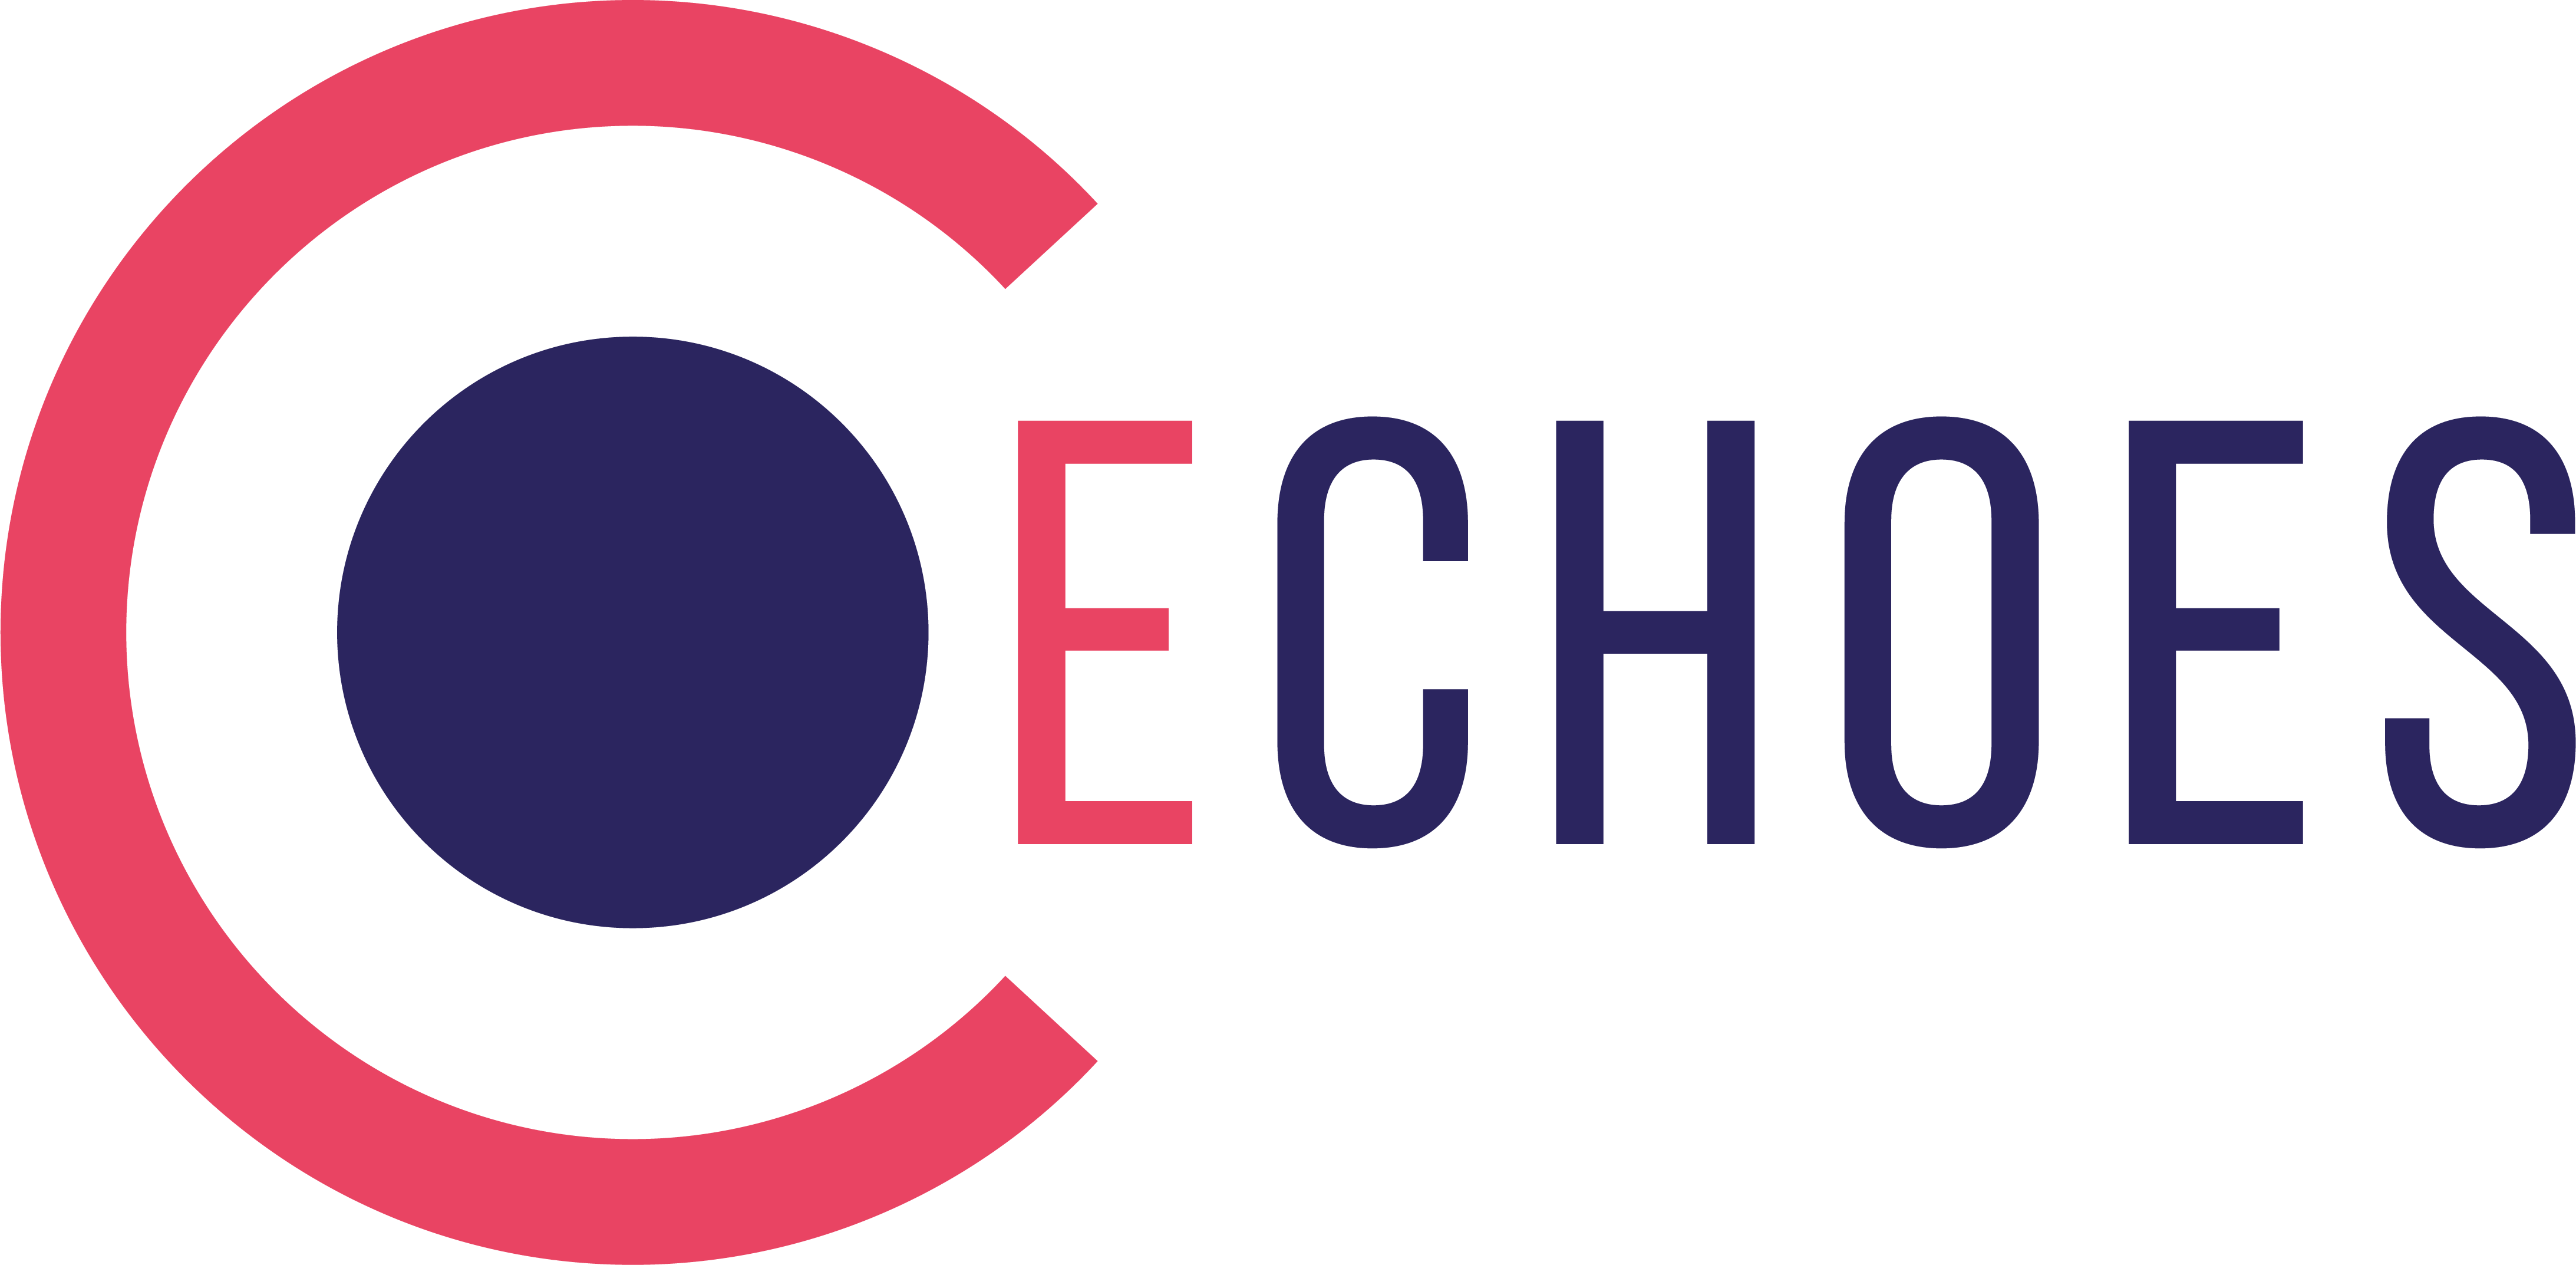 iEchoes